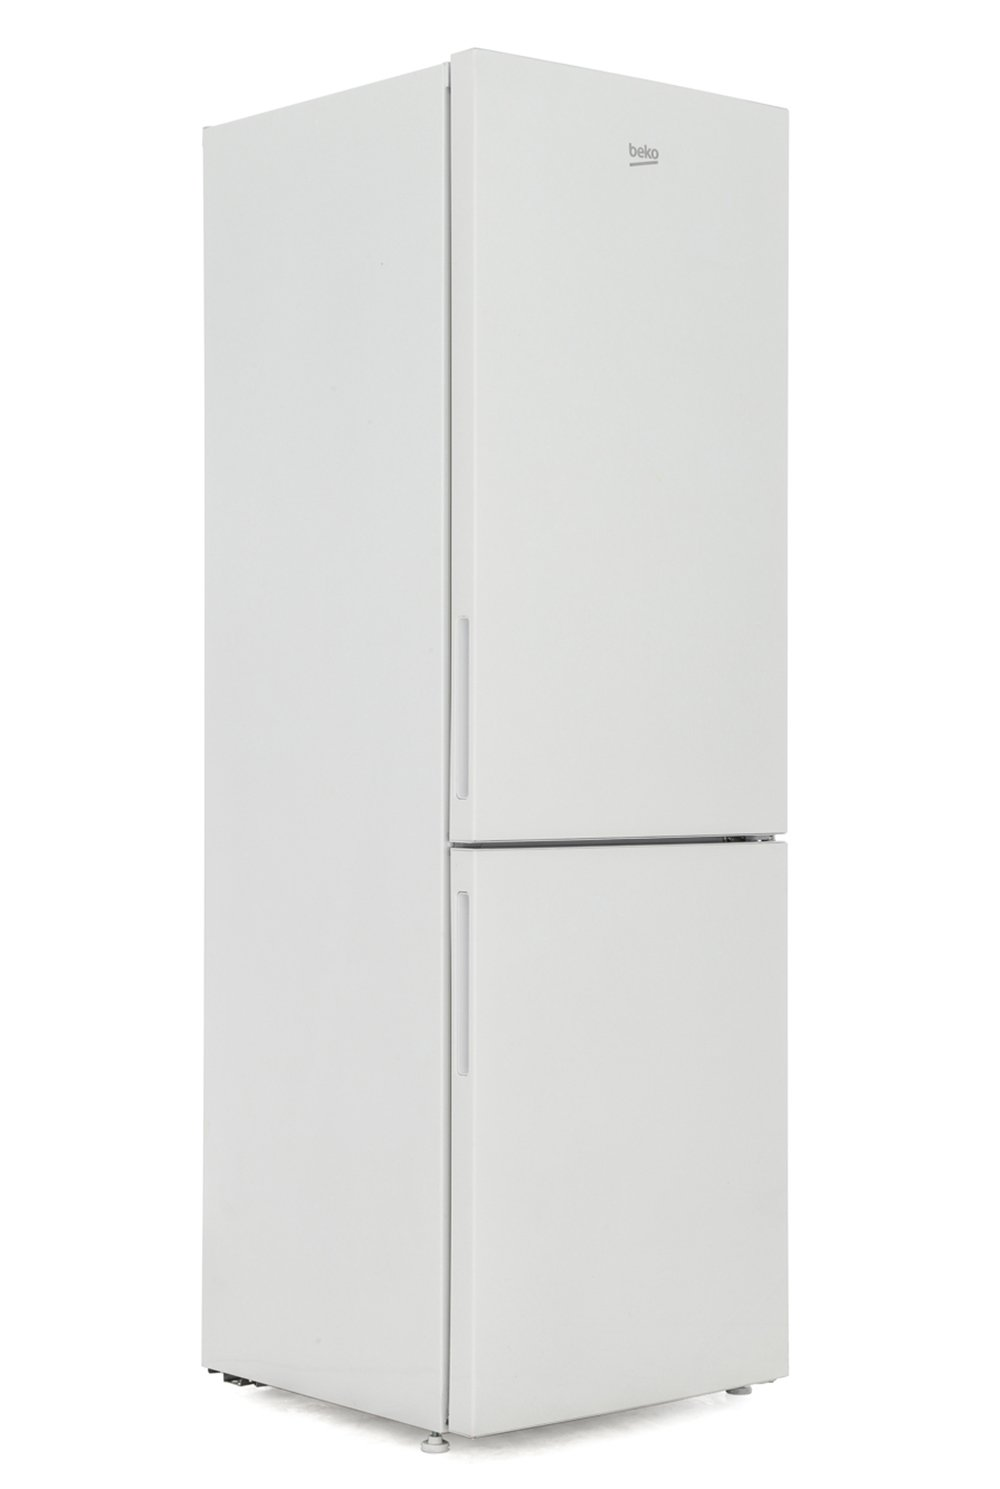 Beko CCFH1685W Frost Free Fridge Freezer